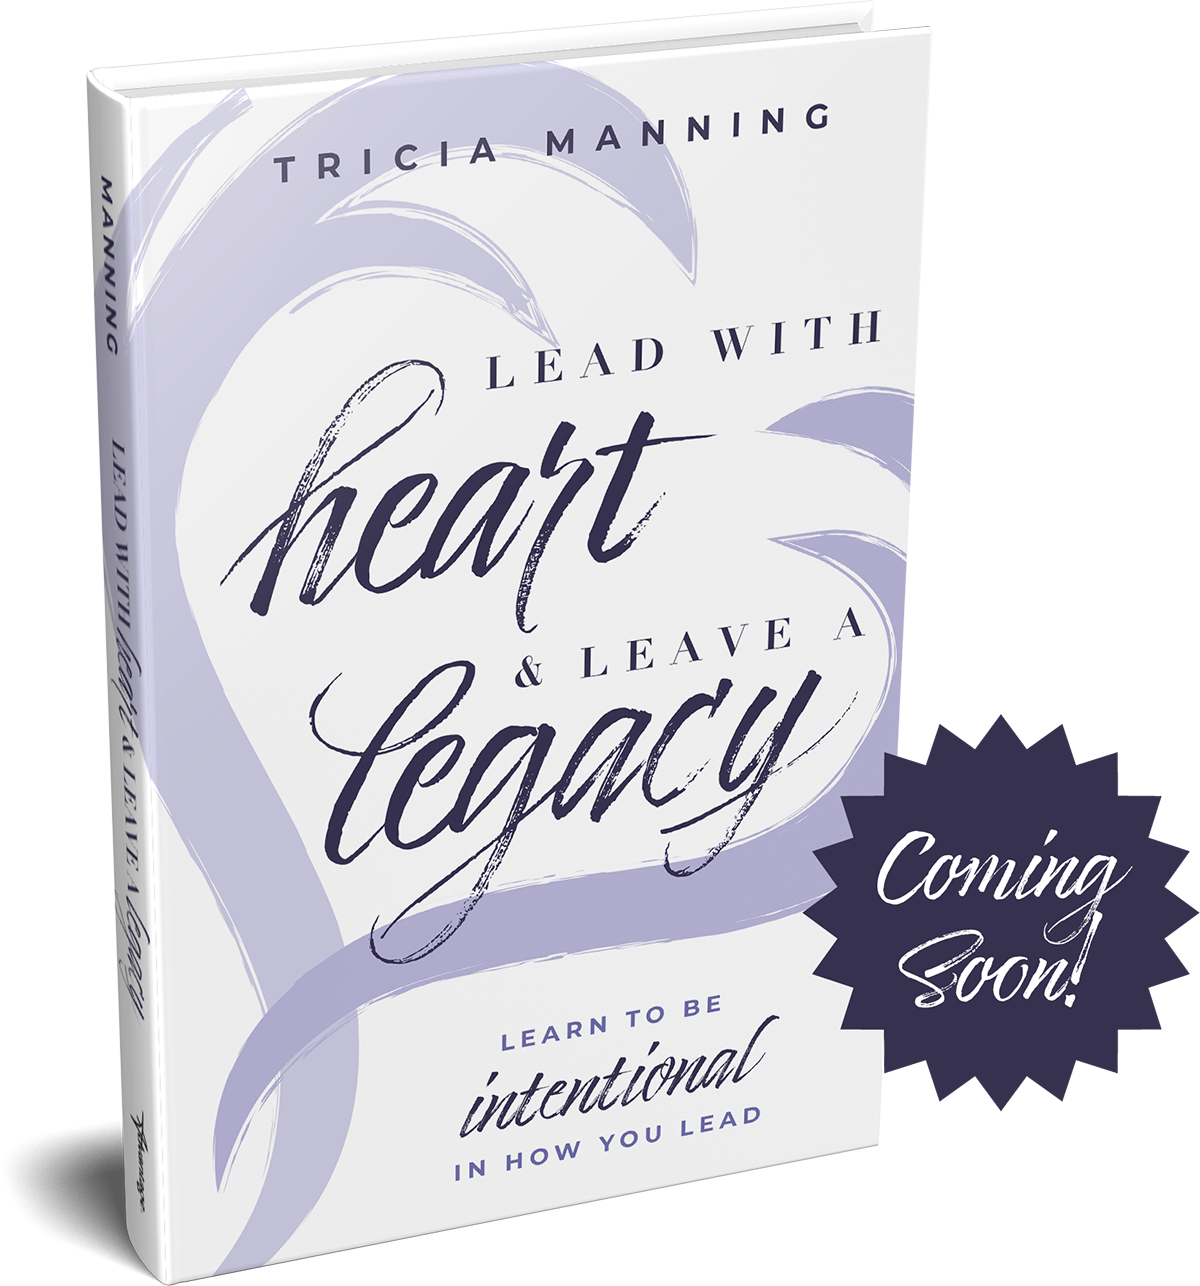 Lead with heart and leave a legacy book